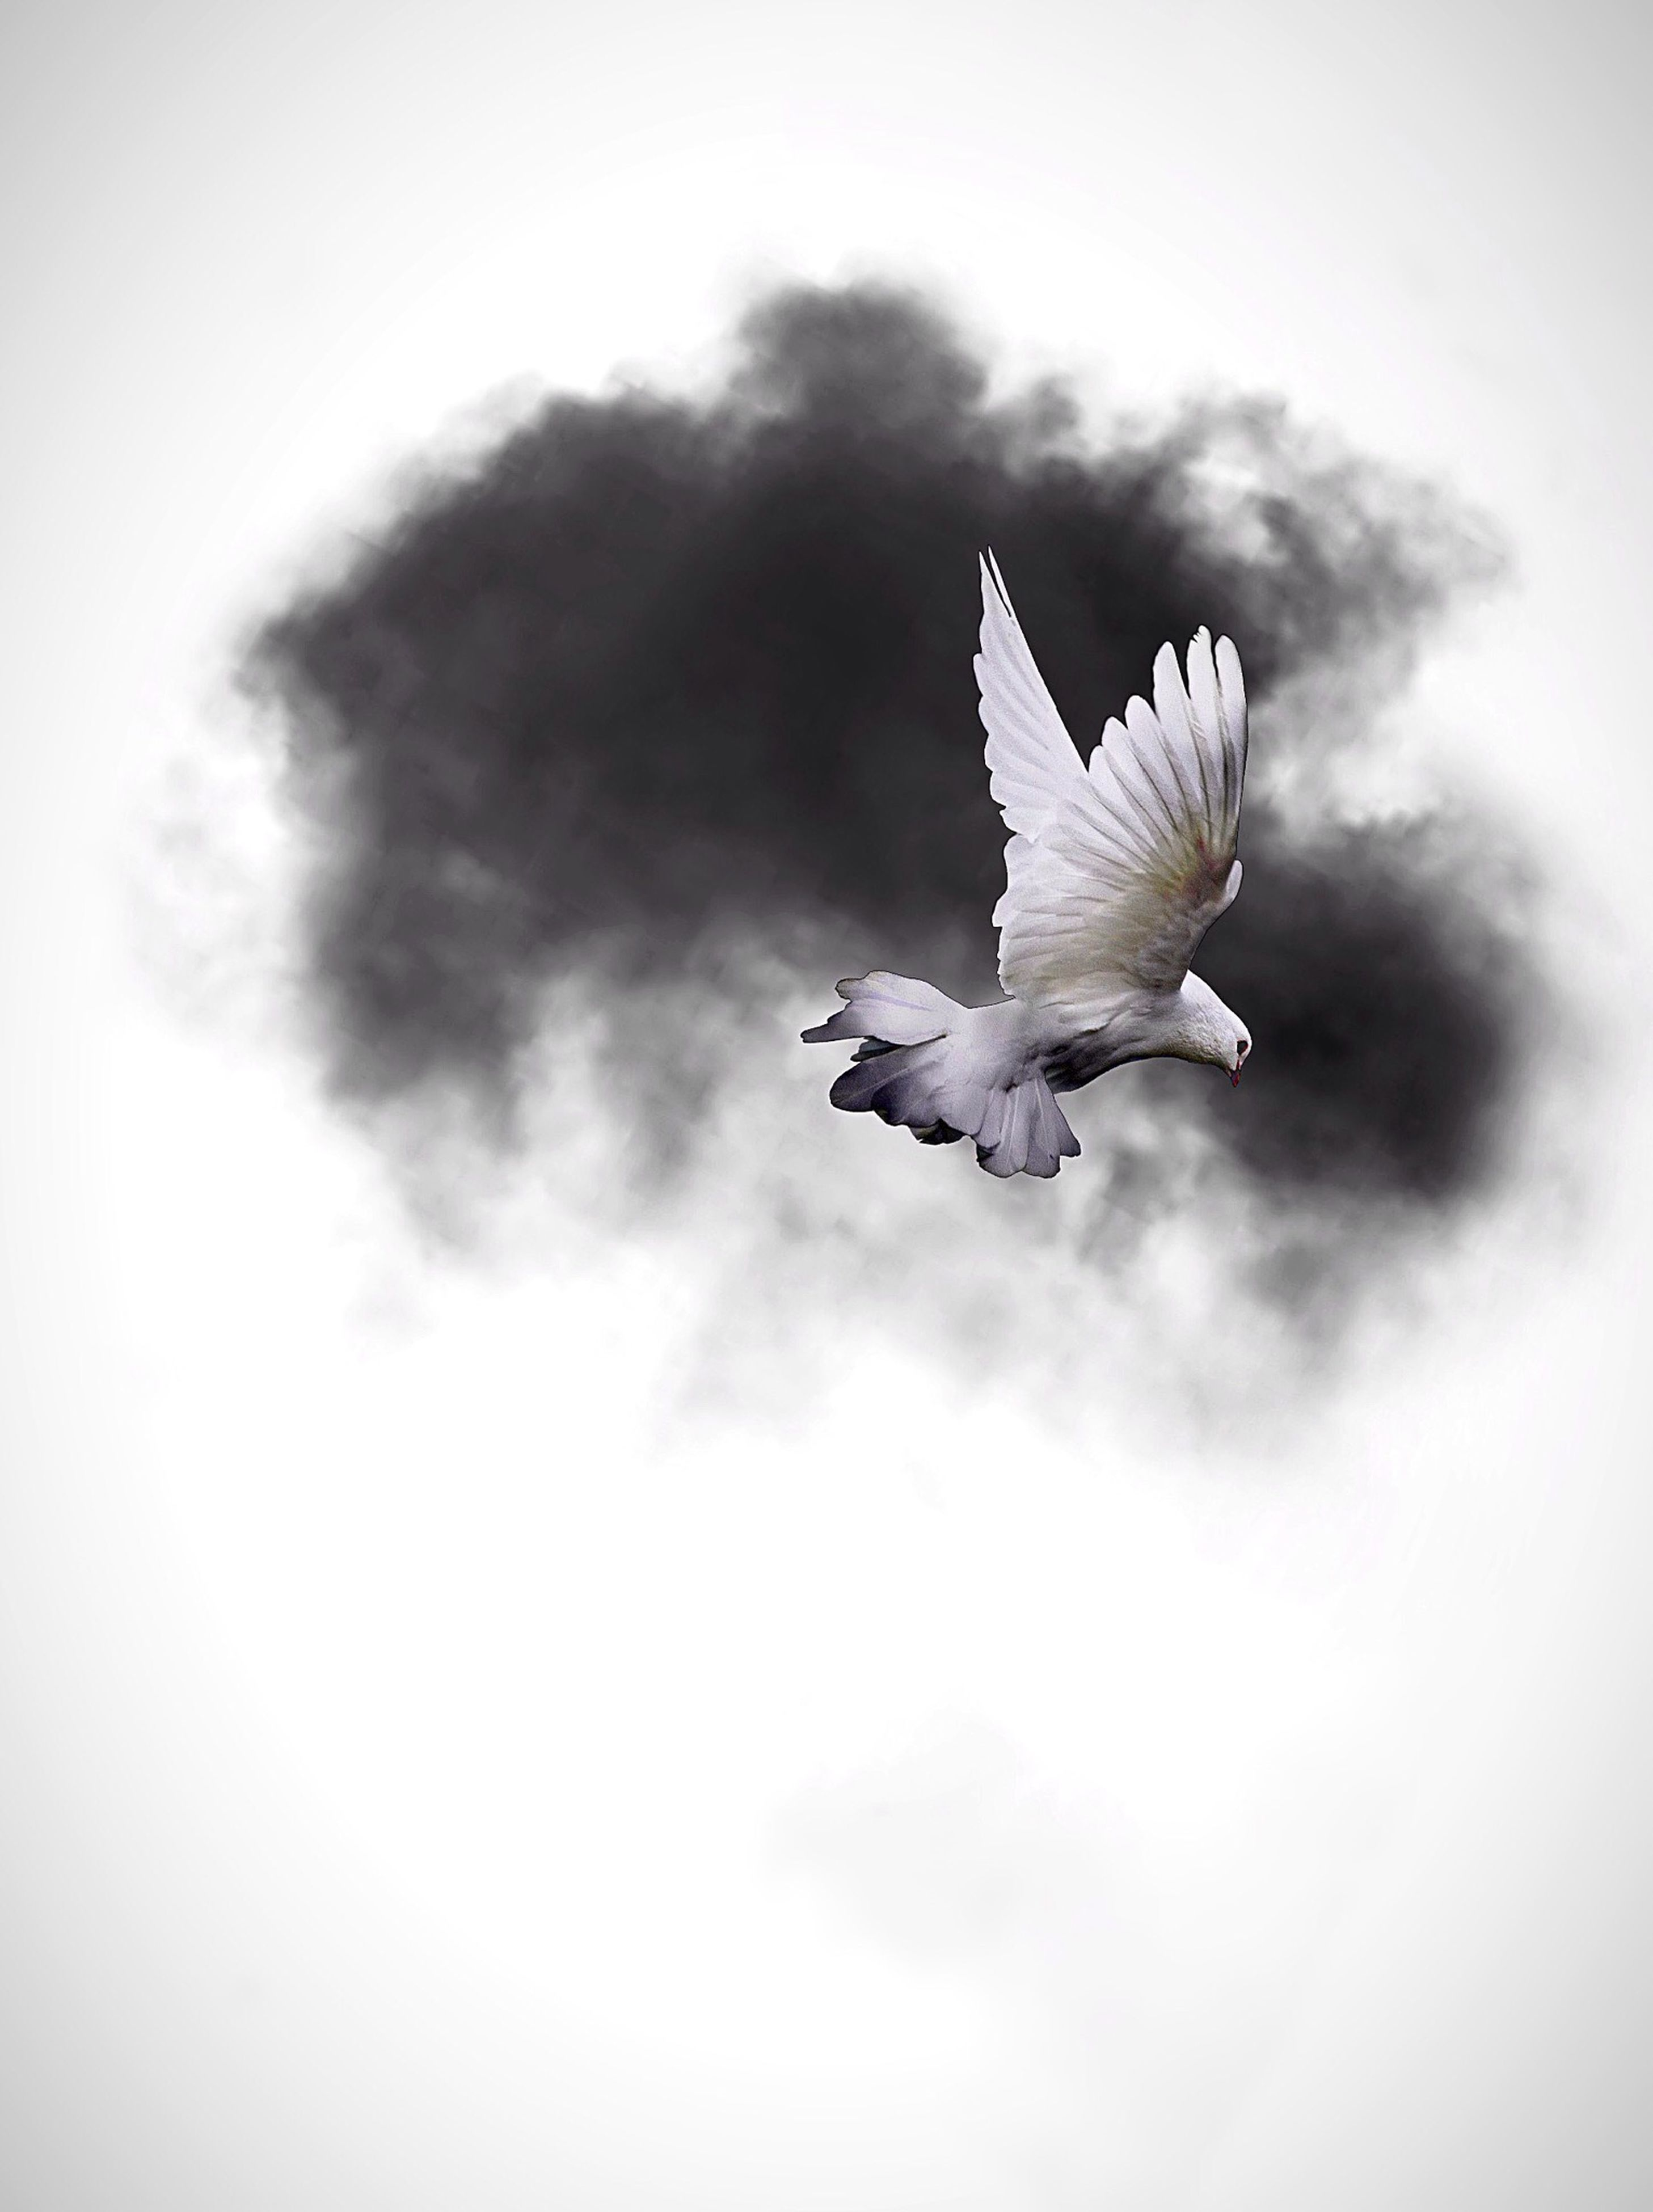 bird, animal themes, low angle view, sky, flying, animals in the wild, spread wings, wildlife, one animal, cloud - sky, cloudy, seagull, white color, mid-air, nature, cloud, day, beauty in nature, outdoors, animal wing